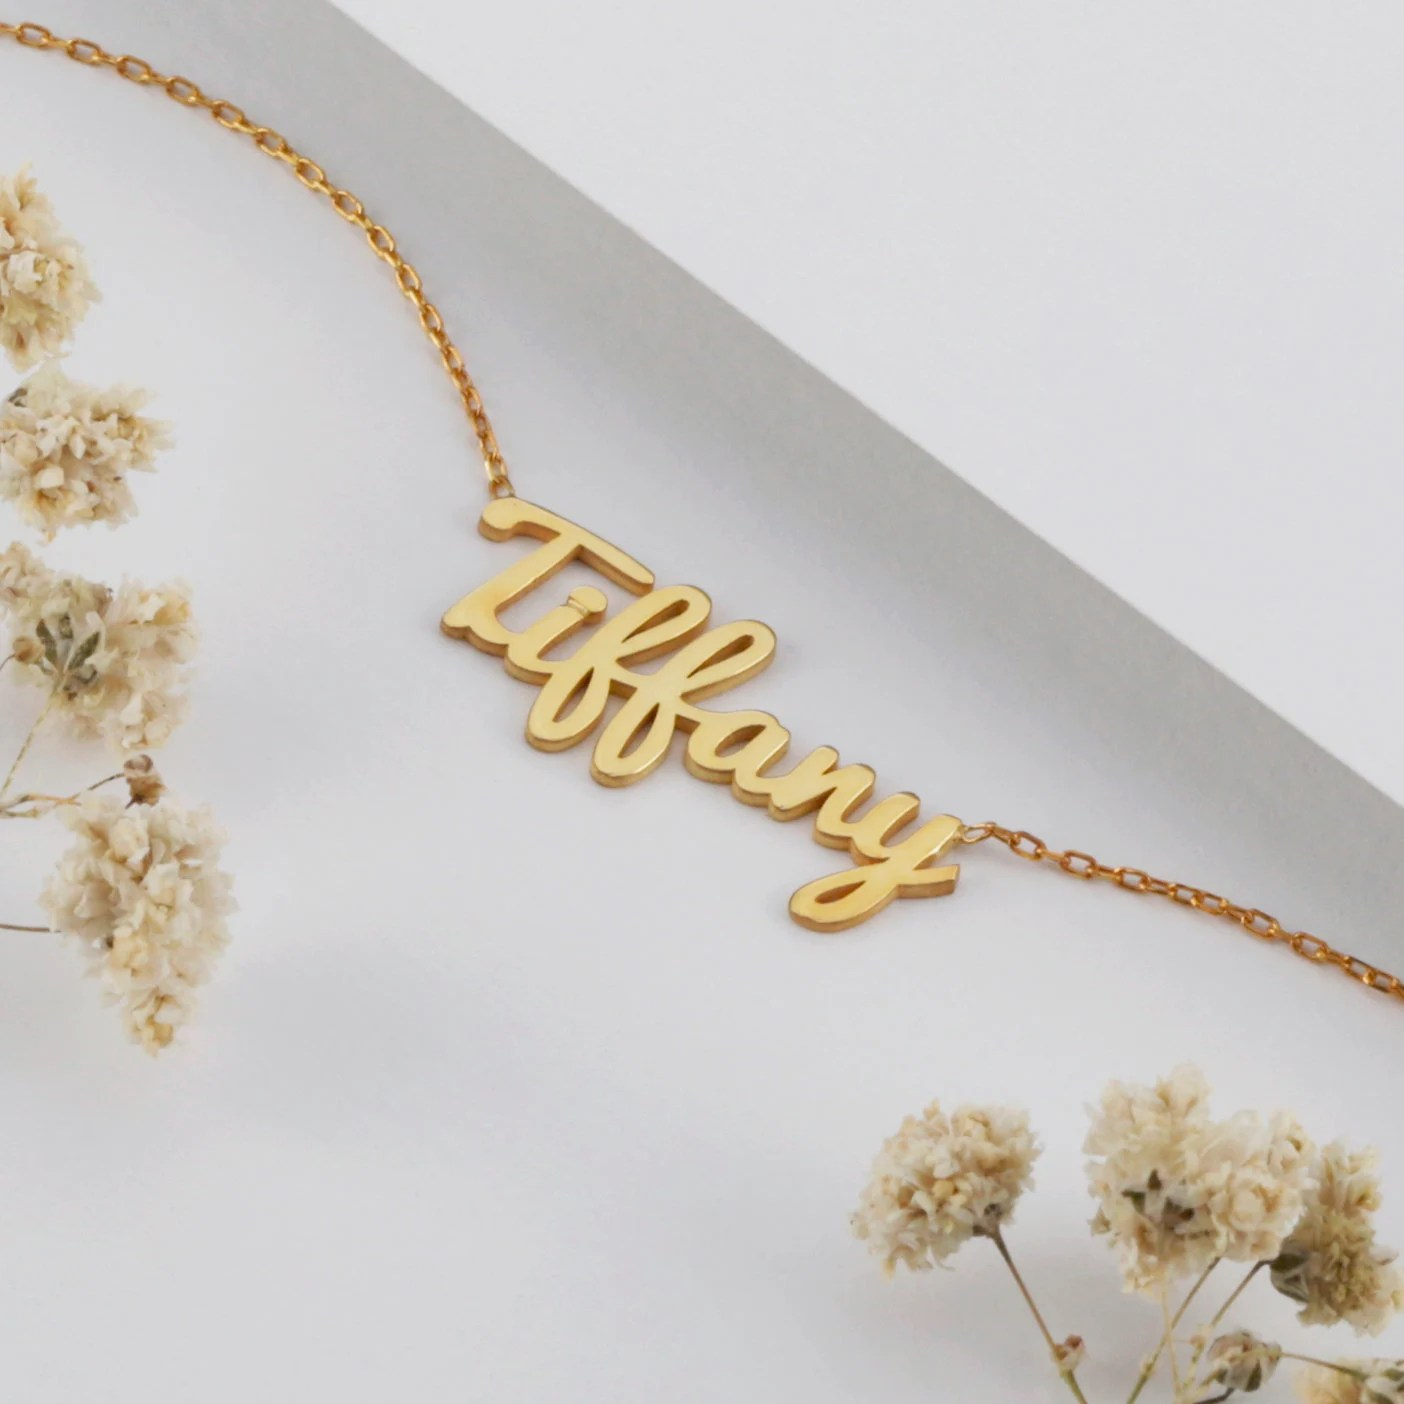 Personalized Name Necklace  Silver  Gold  Rose Gold  Gift image 1